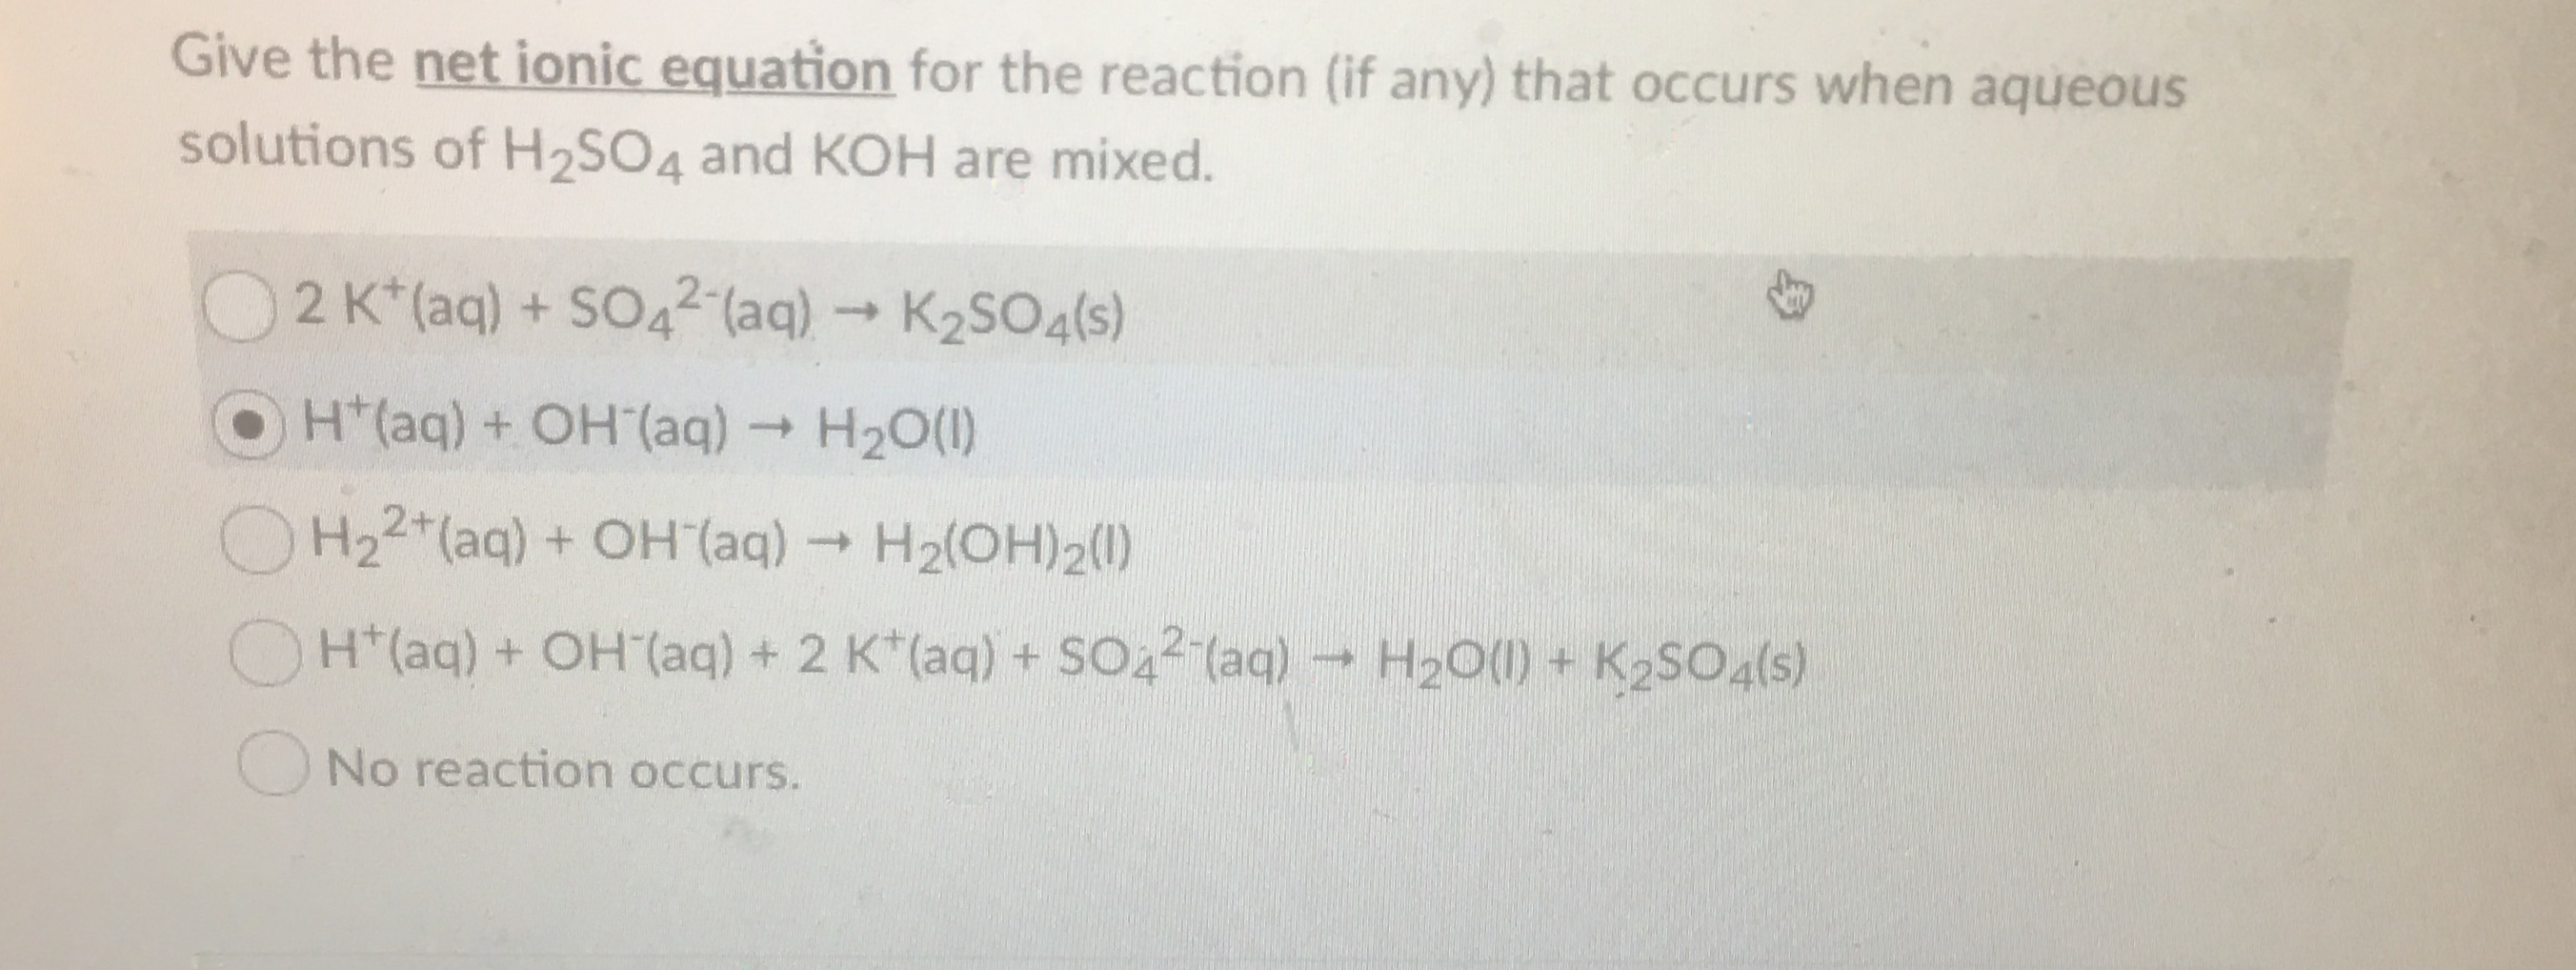 Give the net ionic equation for the reaction (if any) that occurs when aqueous solutions of H2SO4 and KOH are mixed. 2 K*(aq) + SO42(aq)K2SO4(s) OH(aq) + OH (aq)H20() H22 (aq) +OH (aq)H2(OH)2() H20()+ K2SO4(s) H(aq) +OH (aq) + 2 K (aq) + SO42 (aq) No reaction occurs.